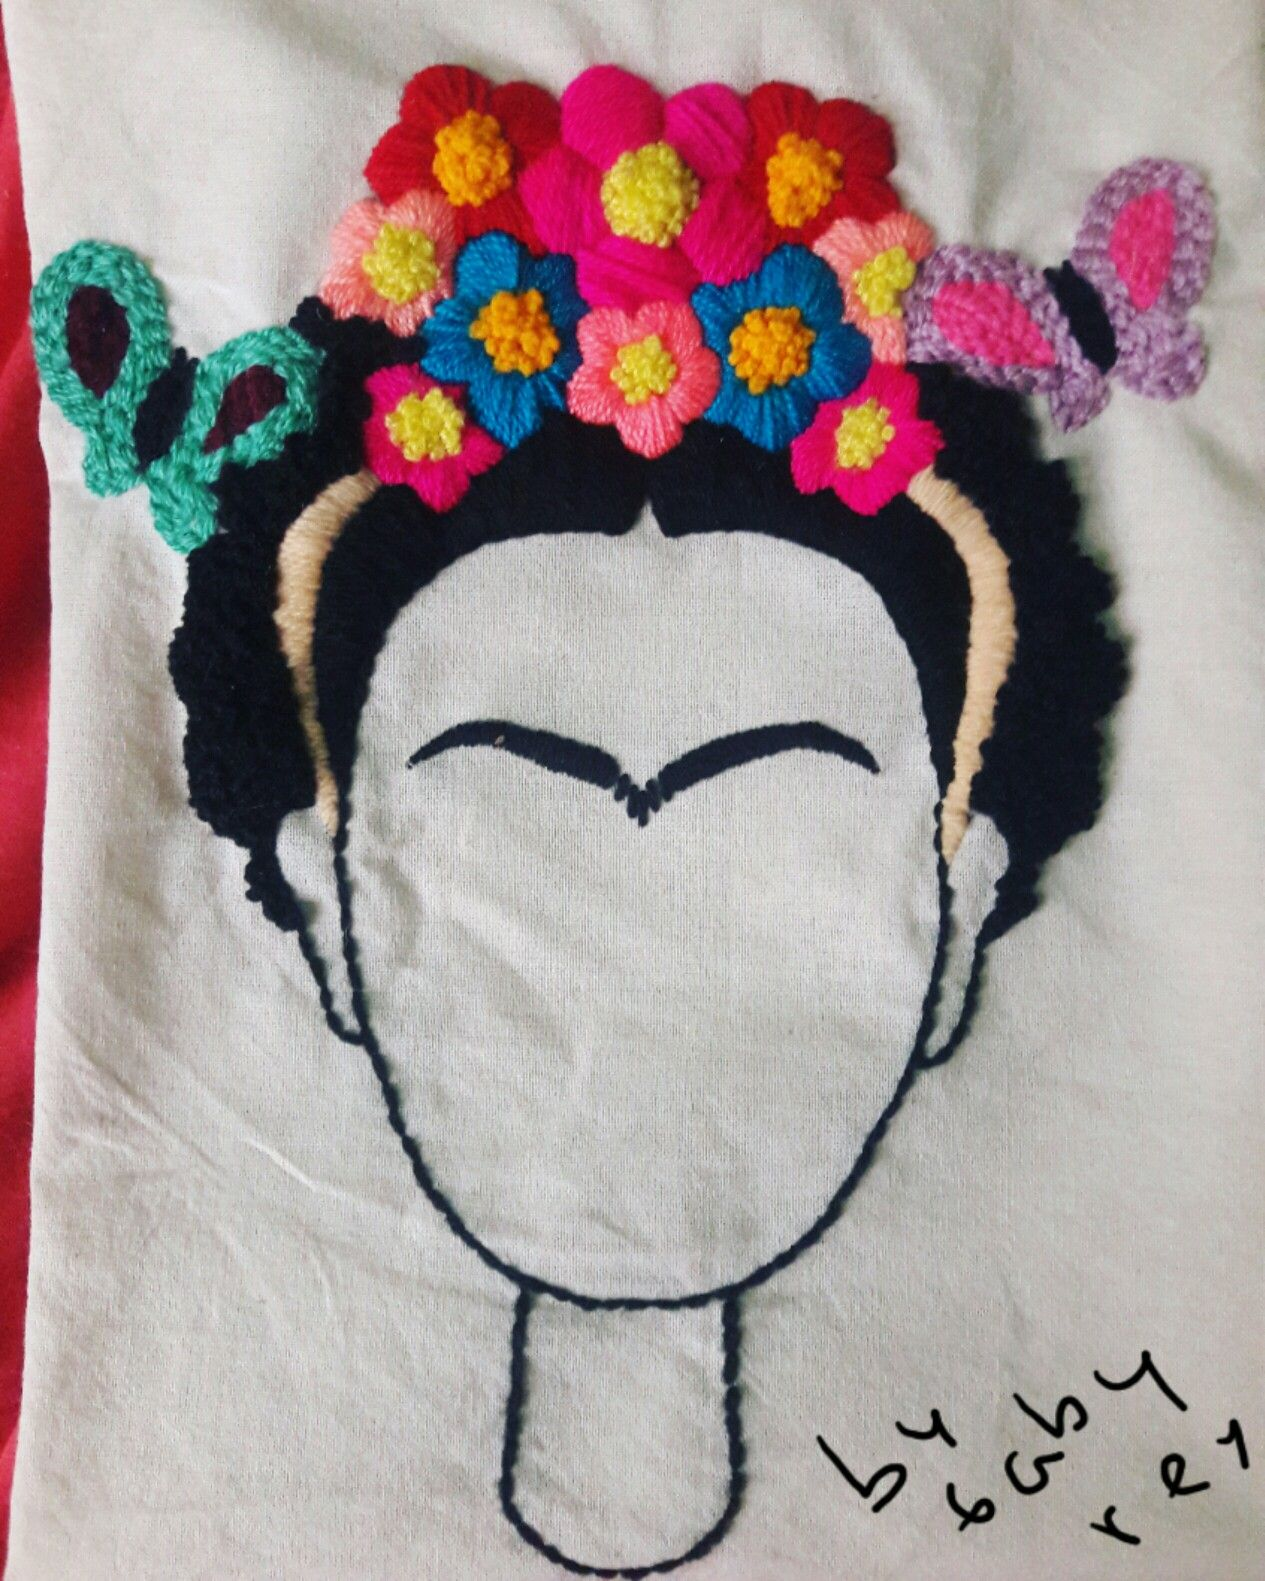 Bordado mexicano, frida kahlo | Bordado | Embroidery, Mexican ...